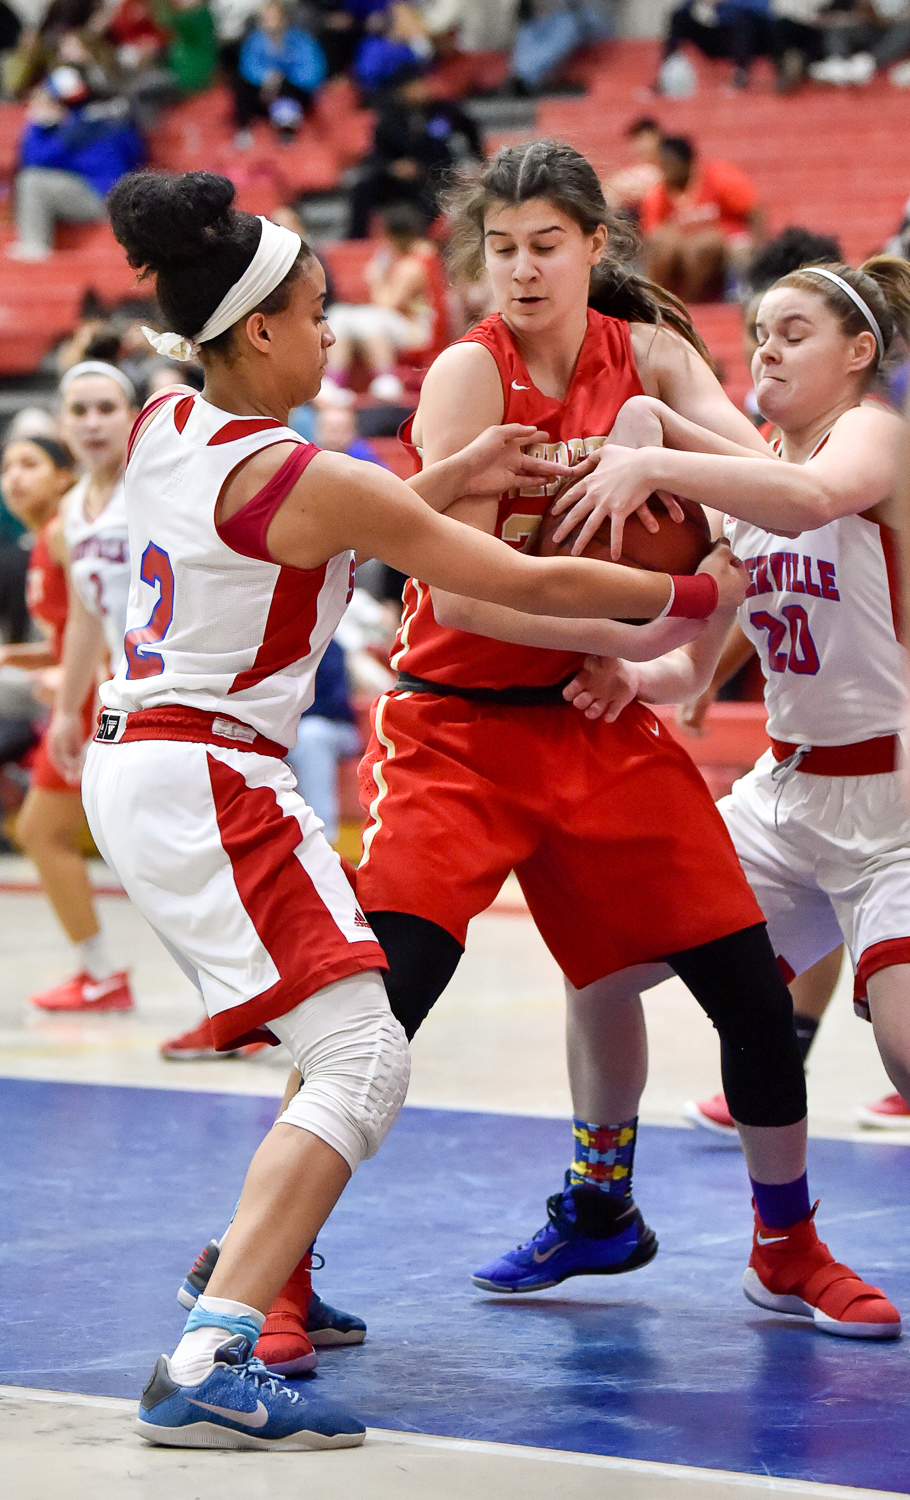 Carolann Cardinale of Everett holds onto the ball as two Somerville players challenge her during their game at Somerville High School on Tuesday, Feb. 13, 2018.